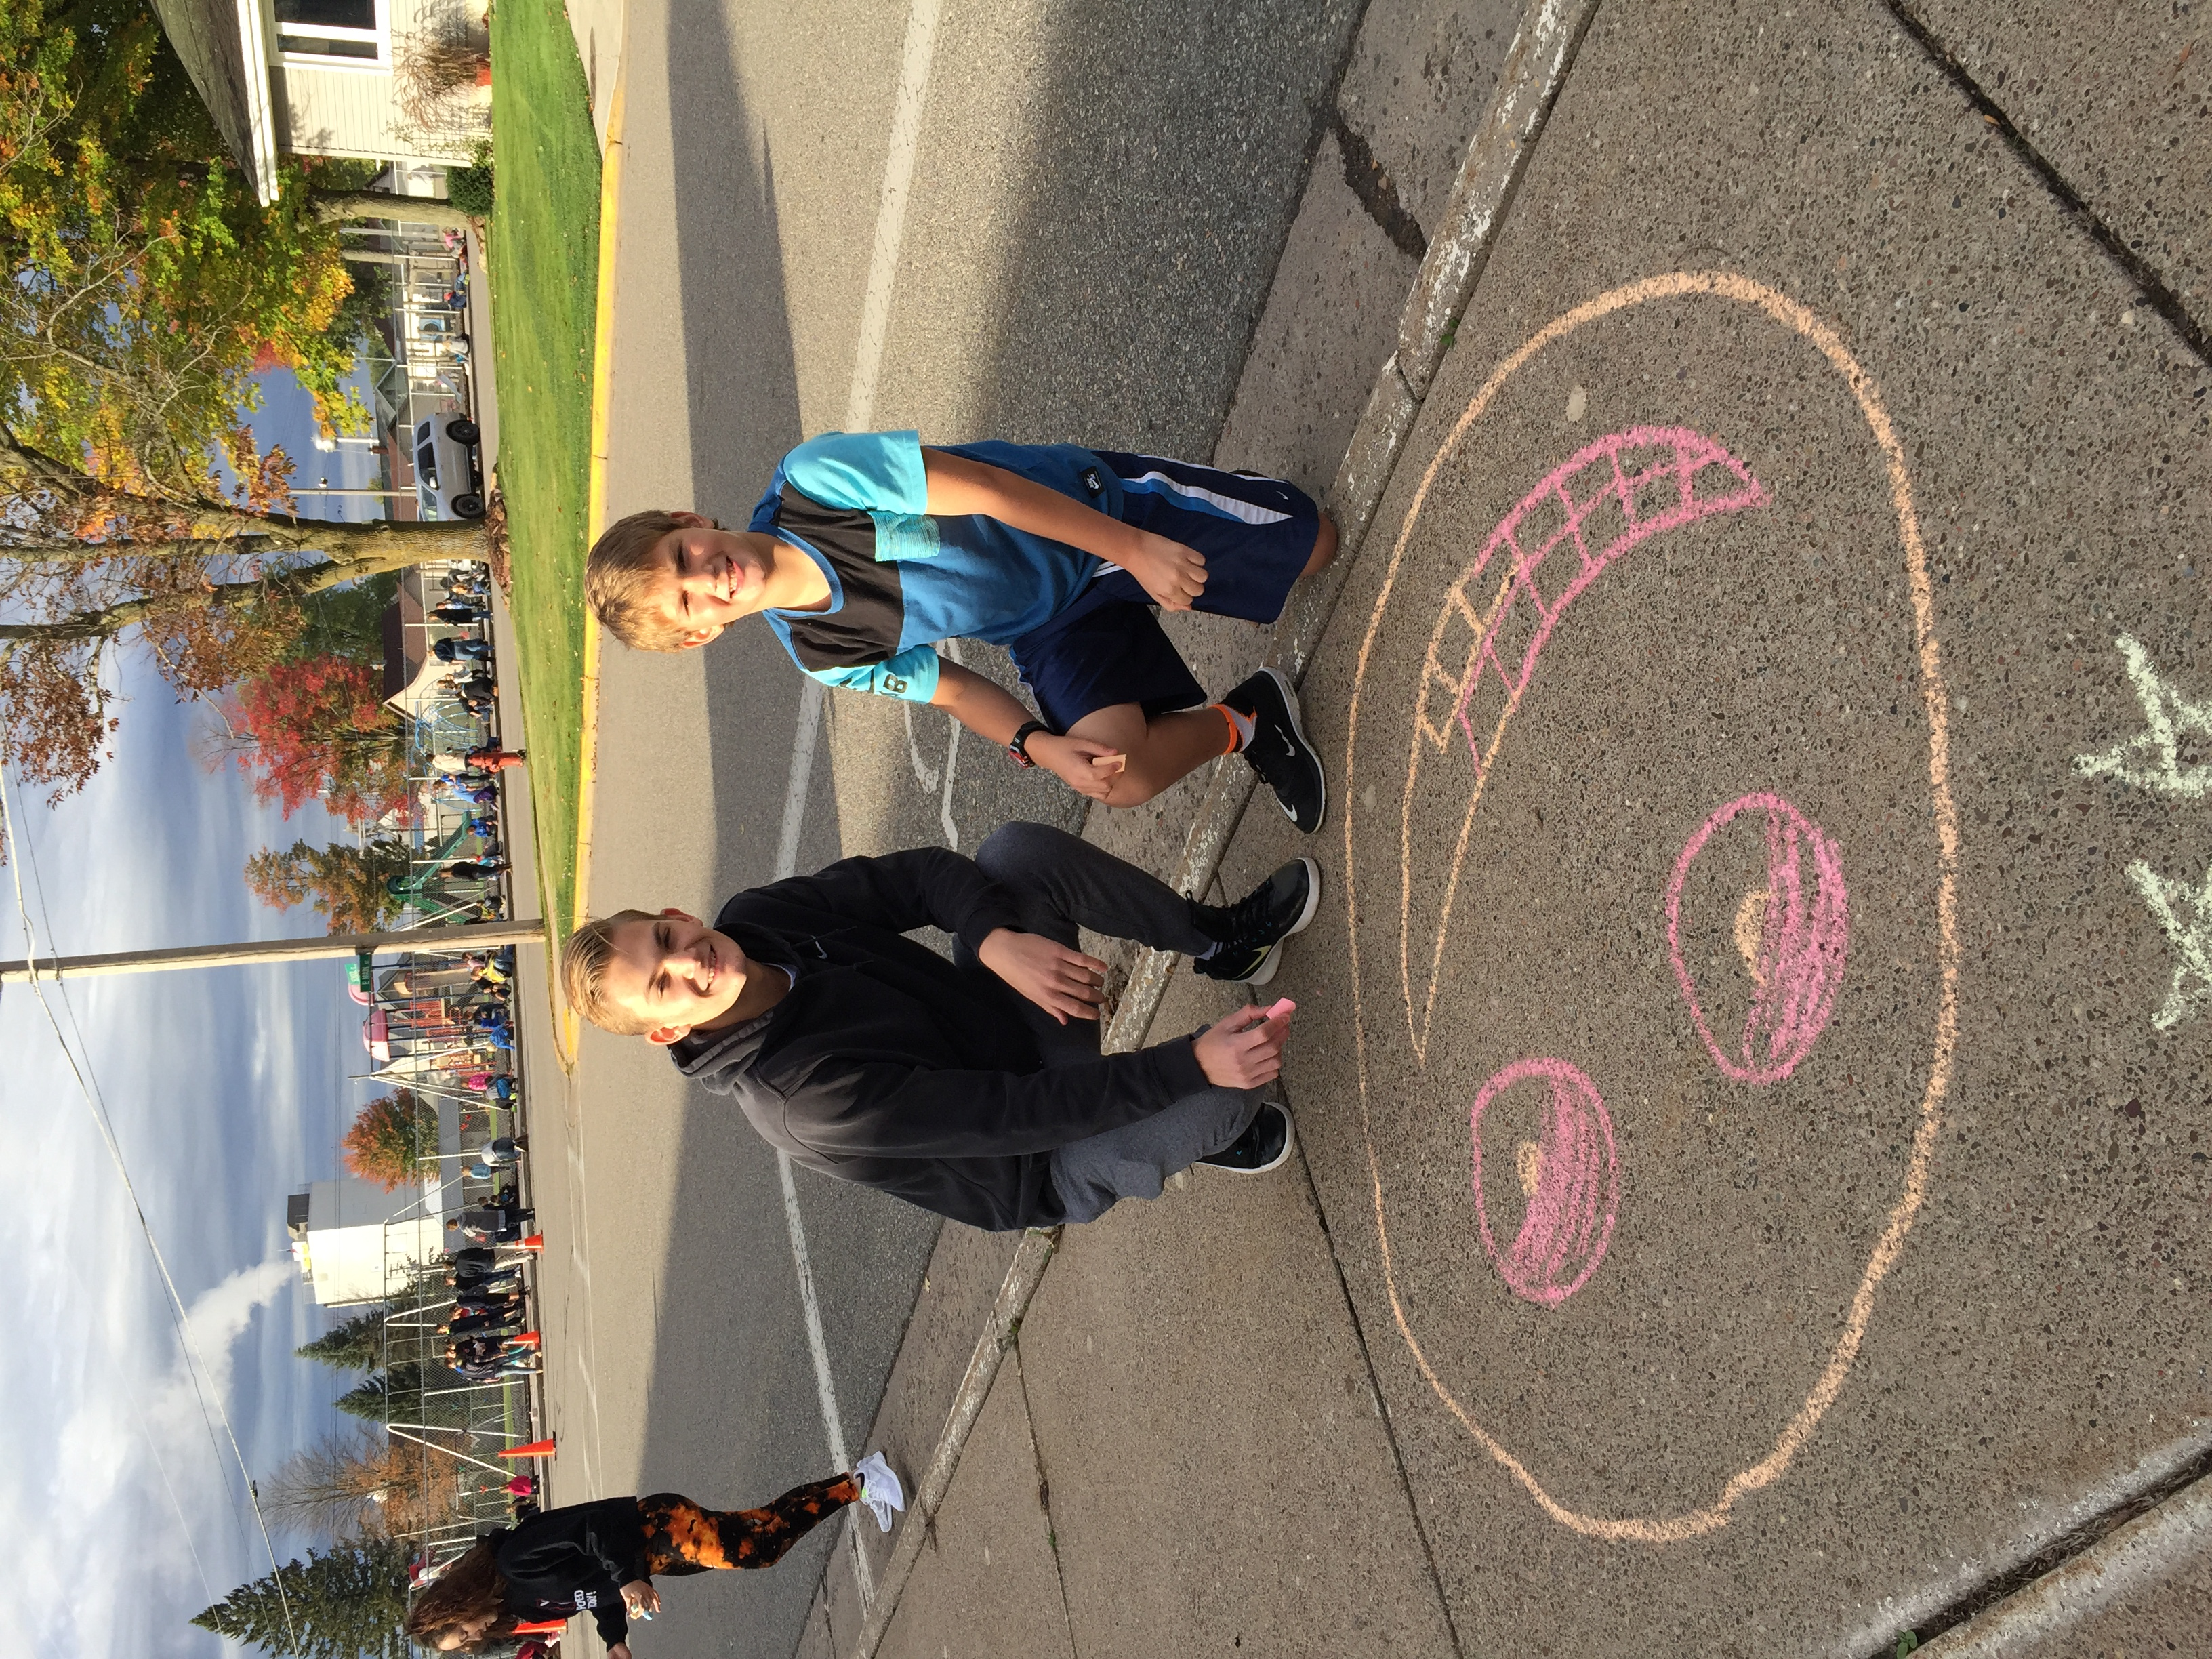 Celebrating Kindness in Chalk sibling style :)